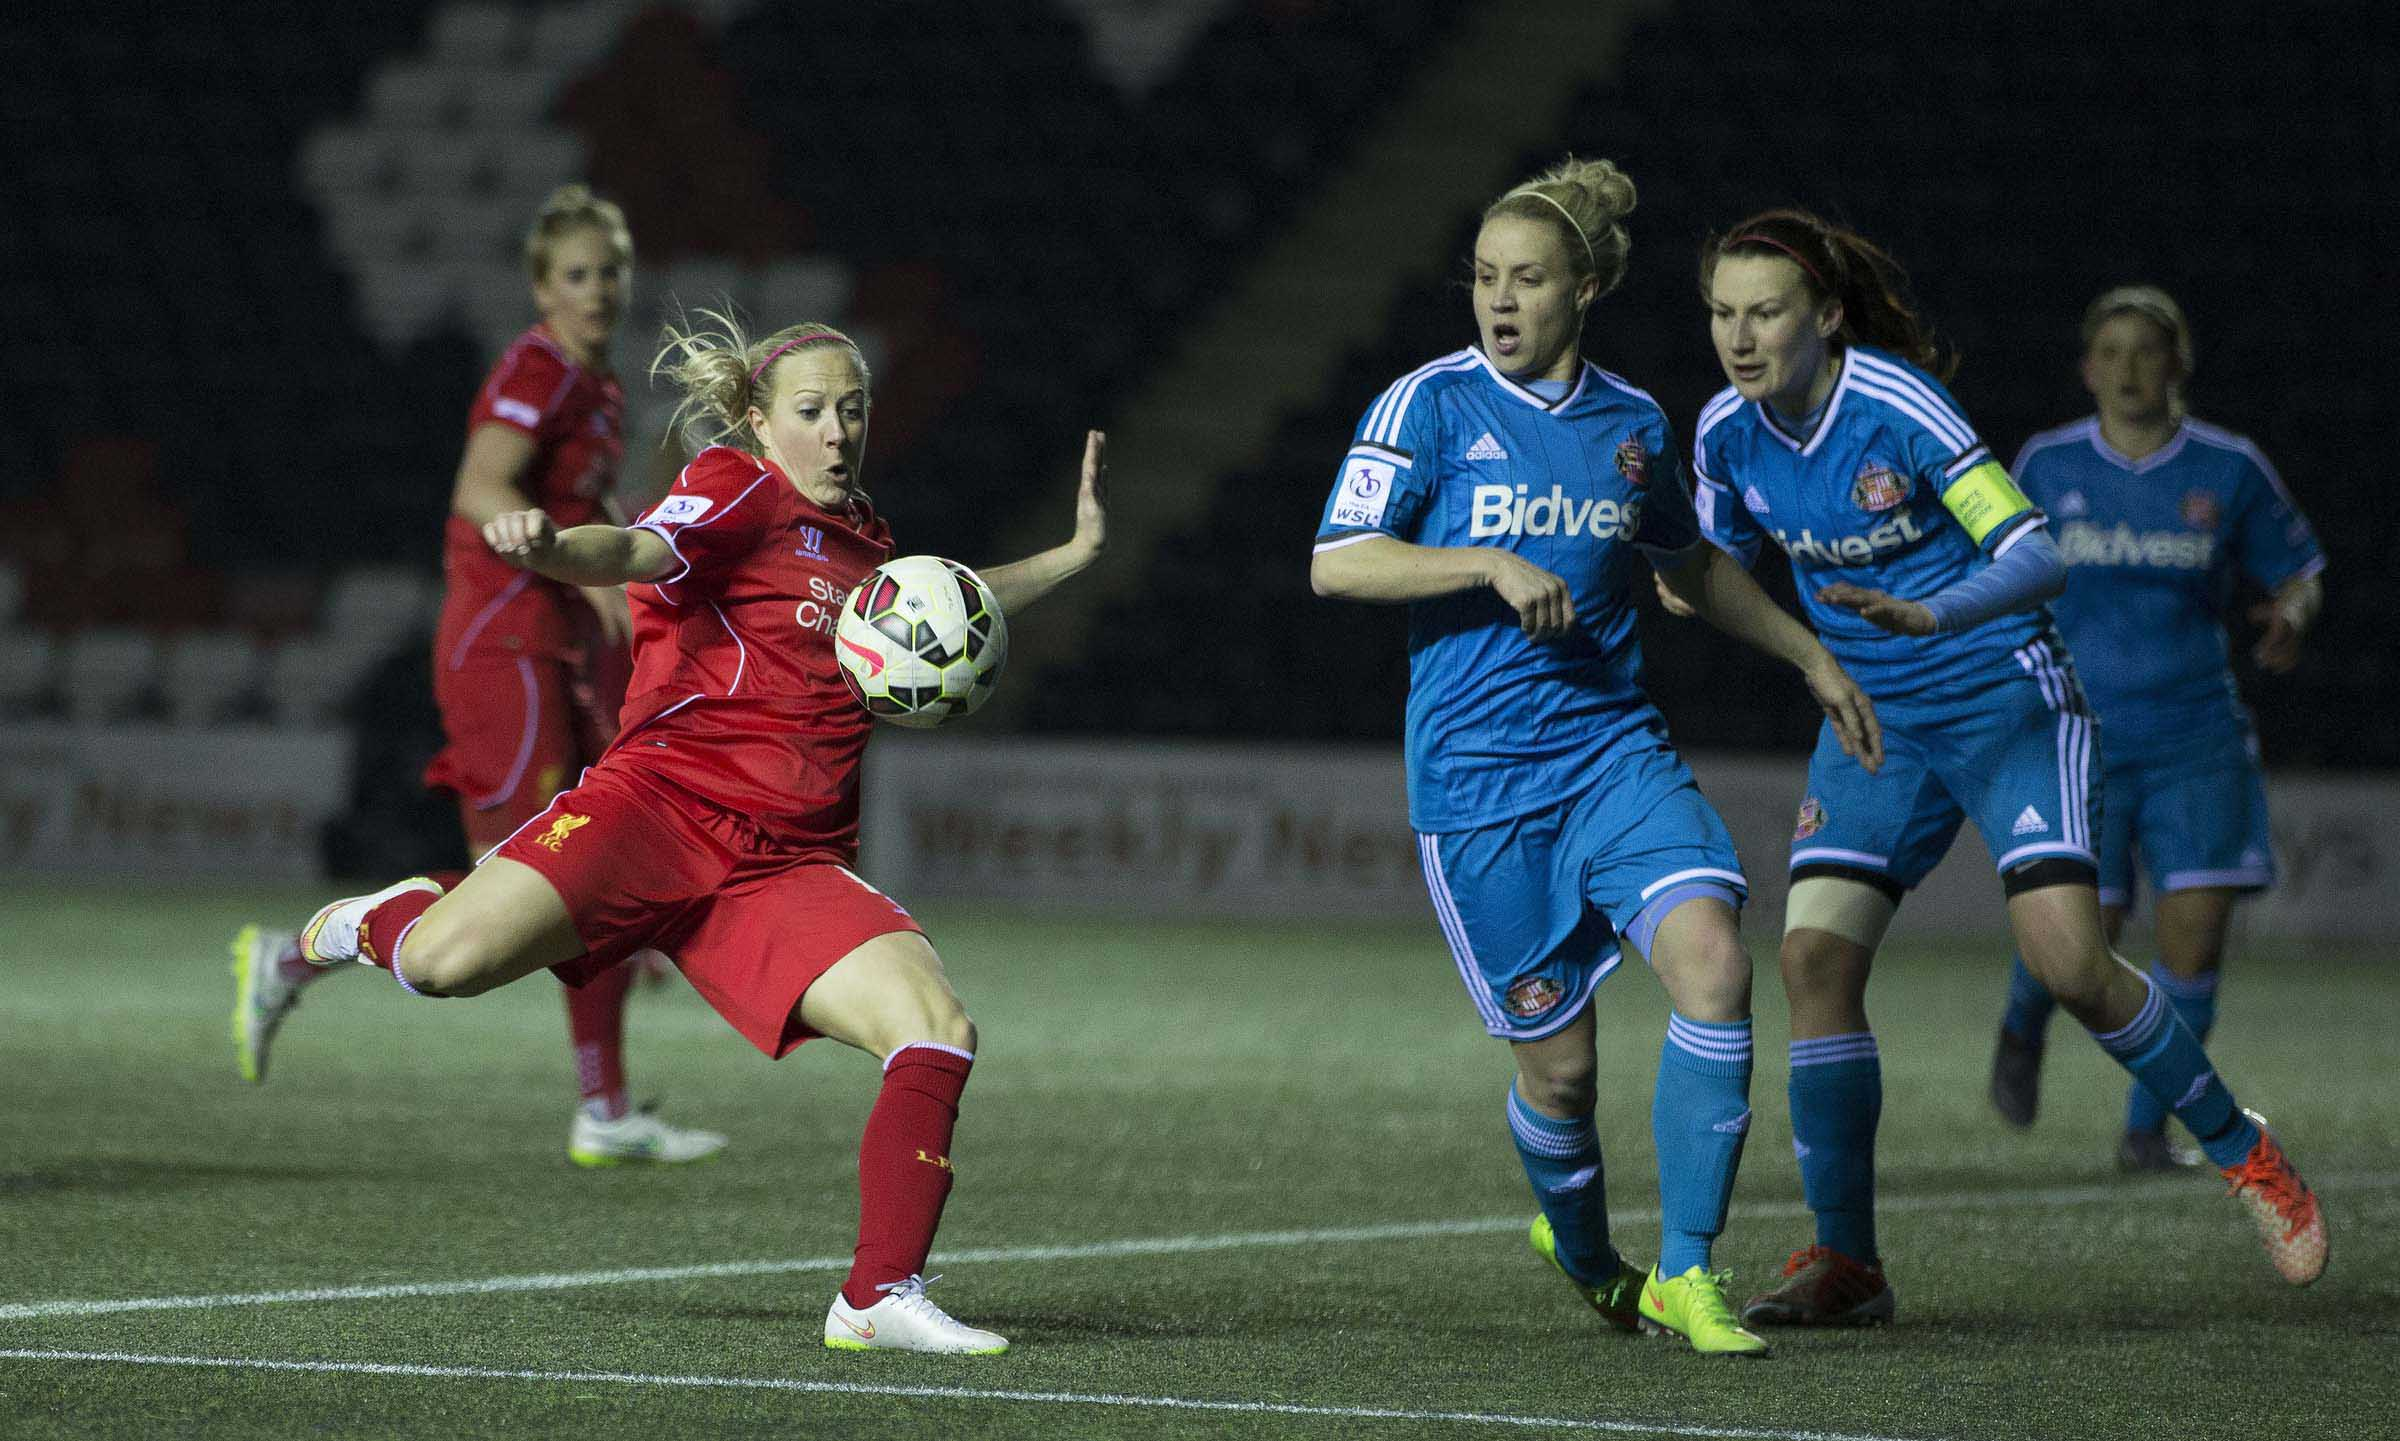 Football - FA Women's Super League - Liverpool Ladies FC v Sunderland AFC Ladies FC